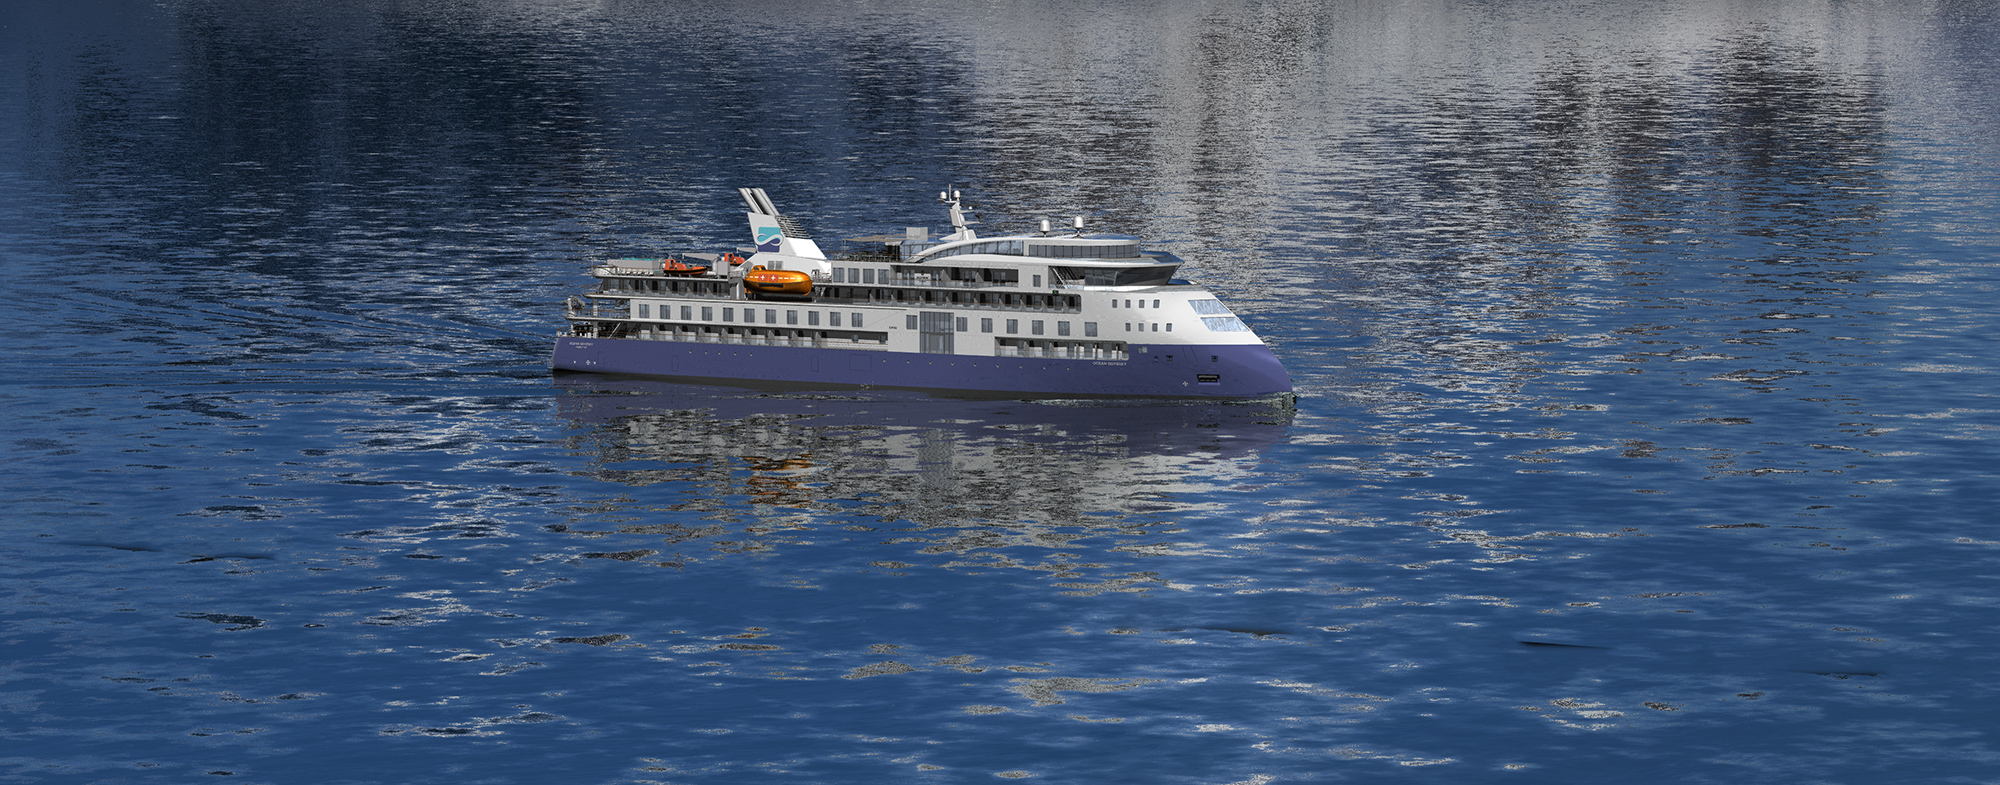 The Ocean Odyssey, an expedition cruise vessel featuring the ULSTEIN X-BOW.